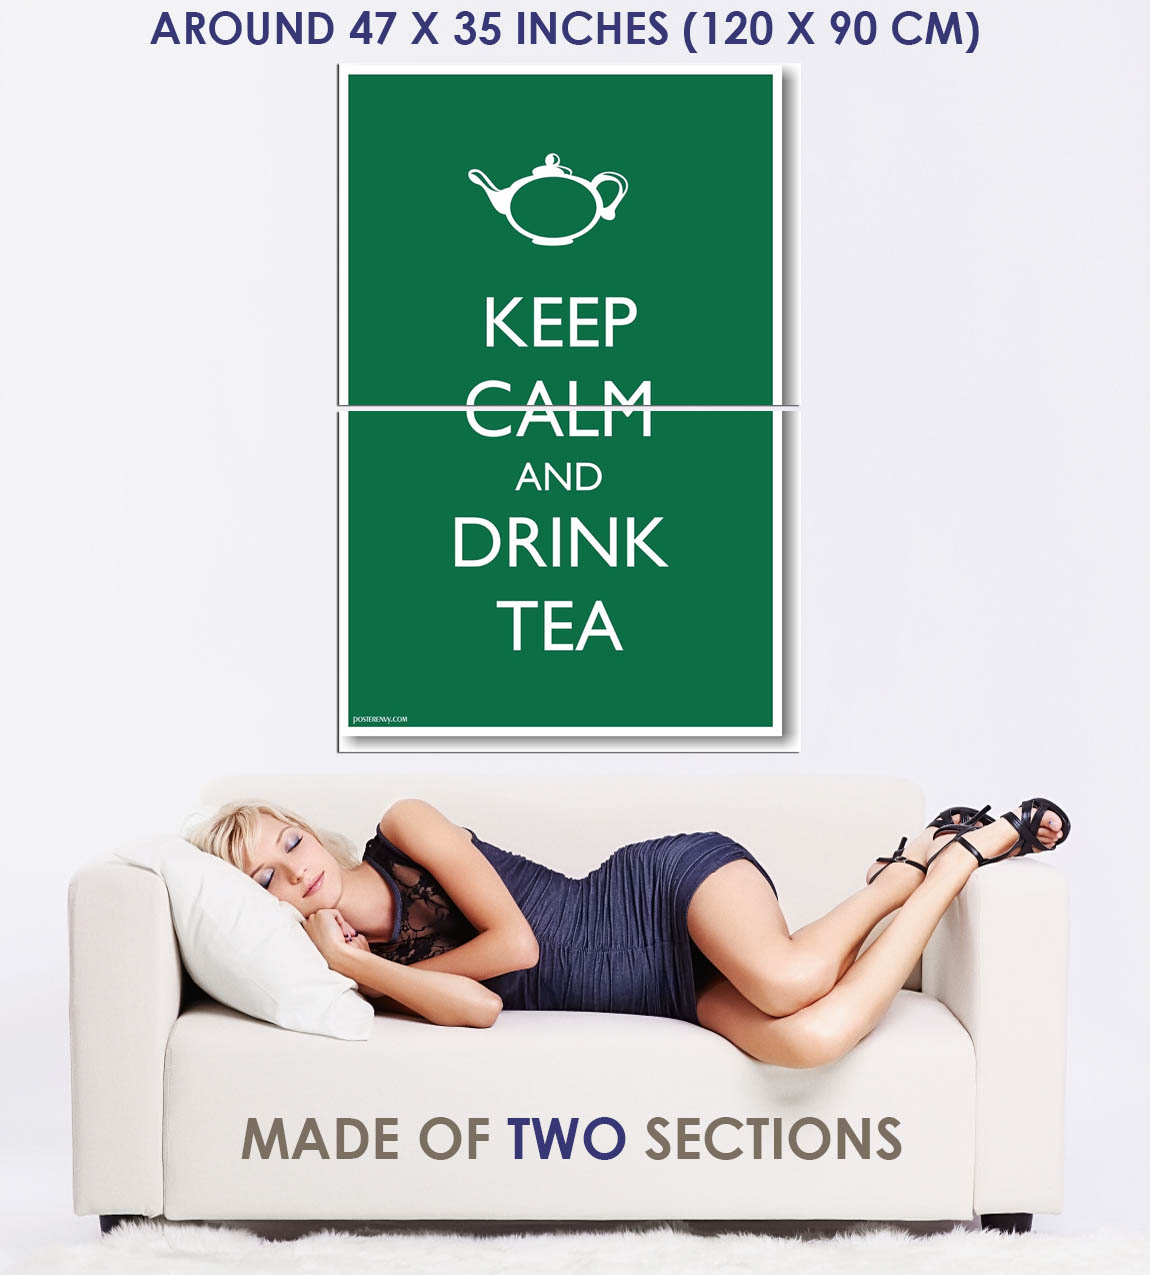 173802-Keep-Calm-and-Drink-Tea-Green-Background-Humor-WALL-PRINT-POSTER-FR miniature 5